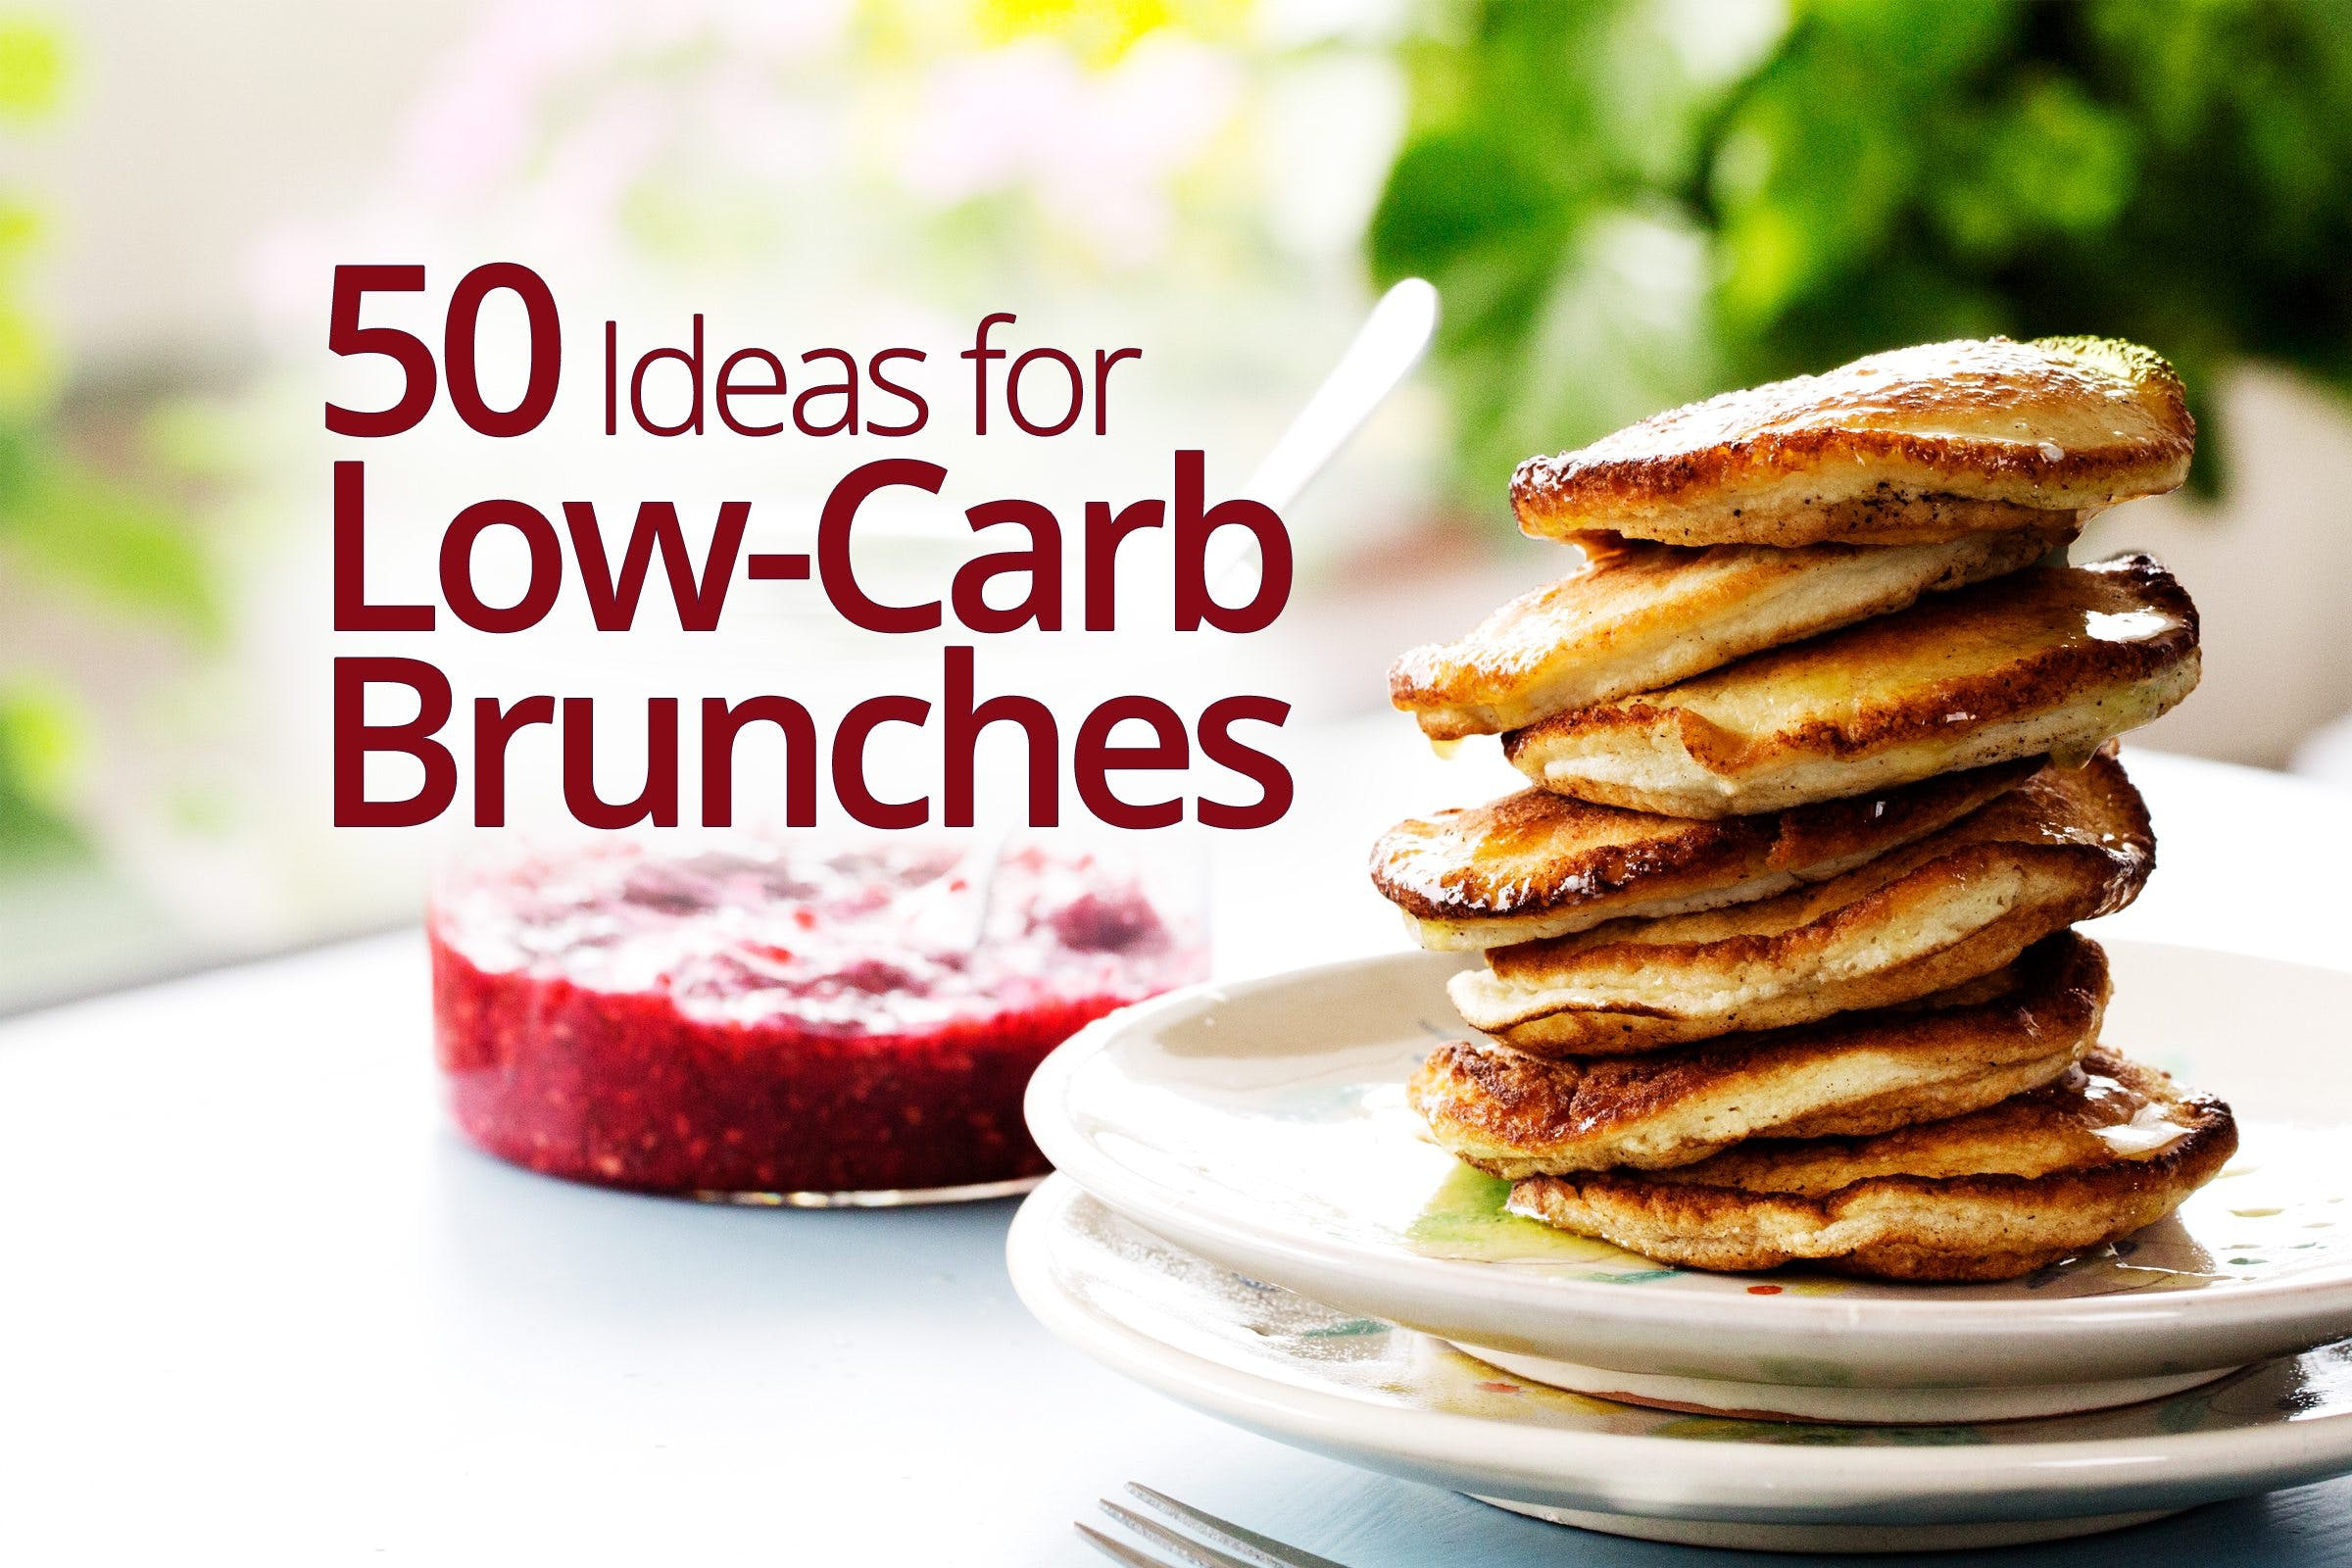 50 Low-Carb Brunches